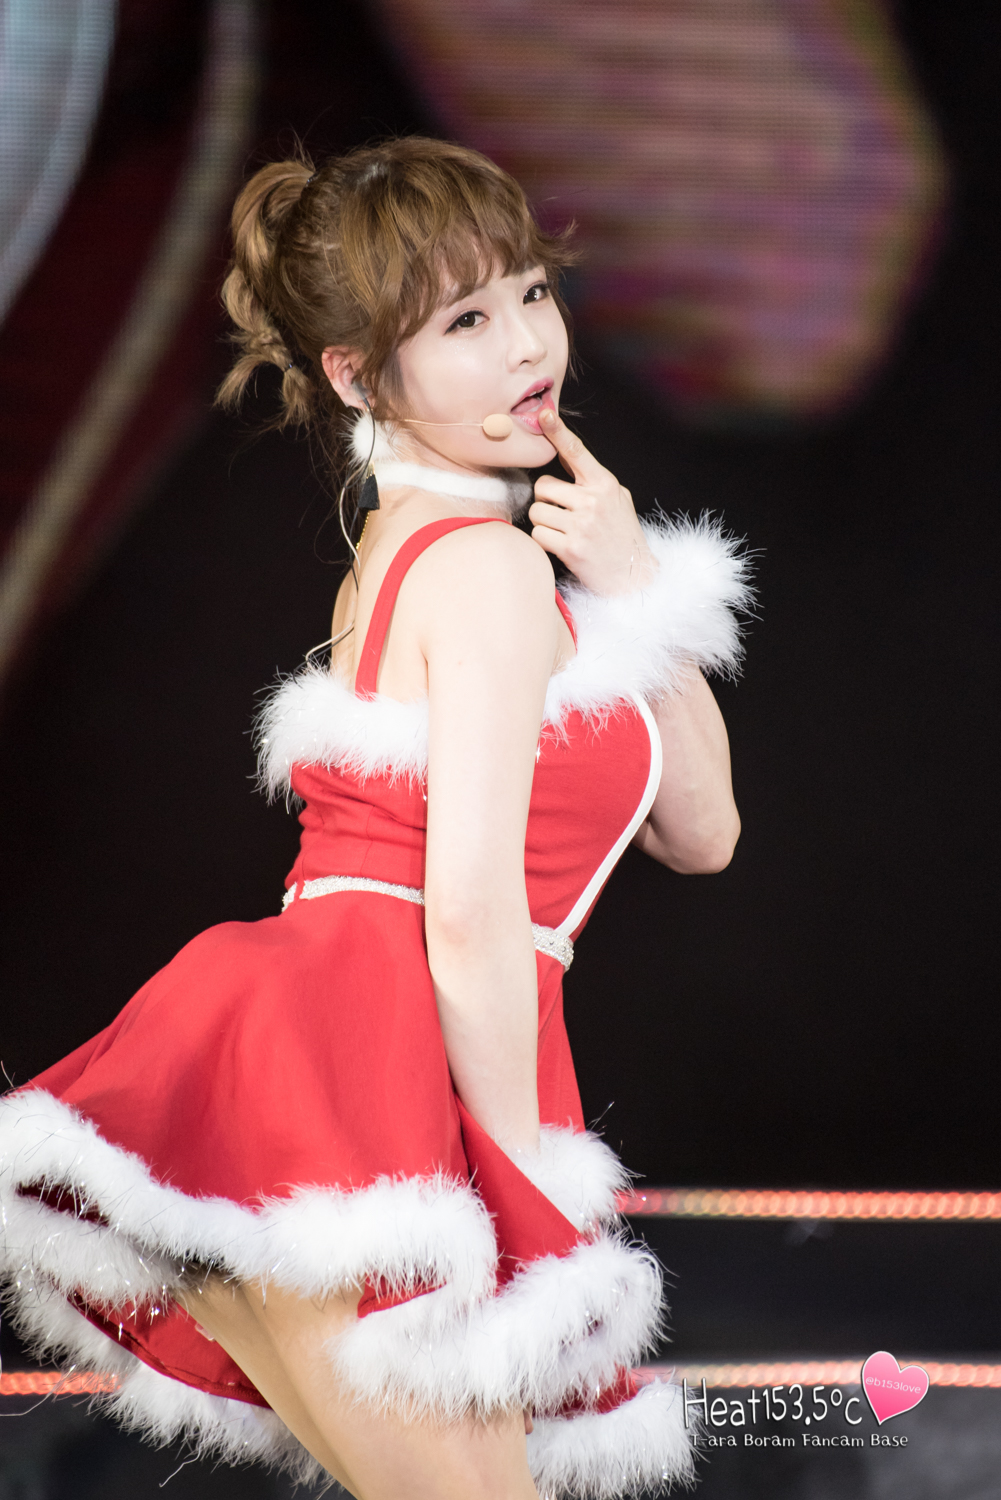 ... Pop, T-ara, Jeon Boram, Open Mouth, Christmas Outfit, Red Dress